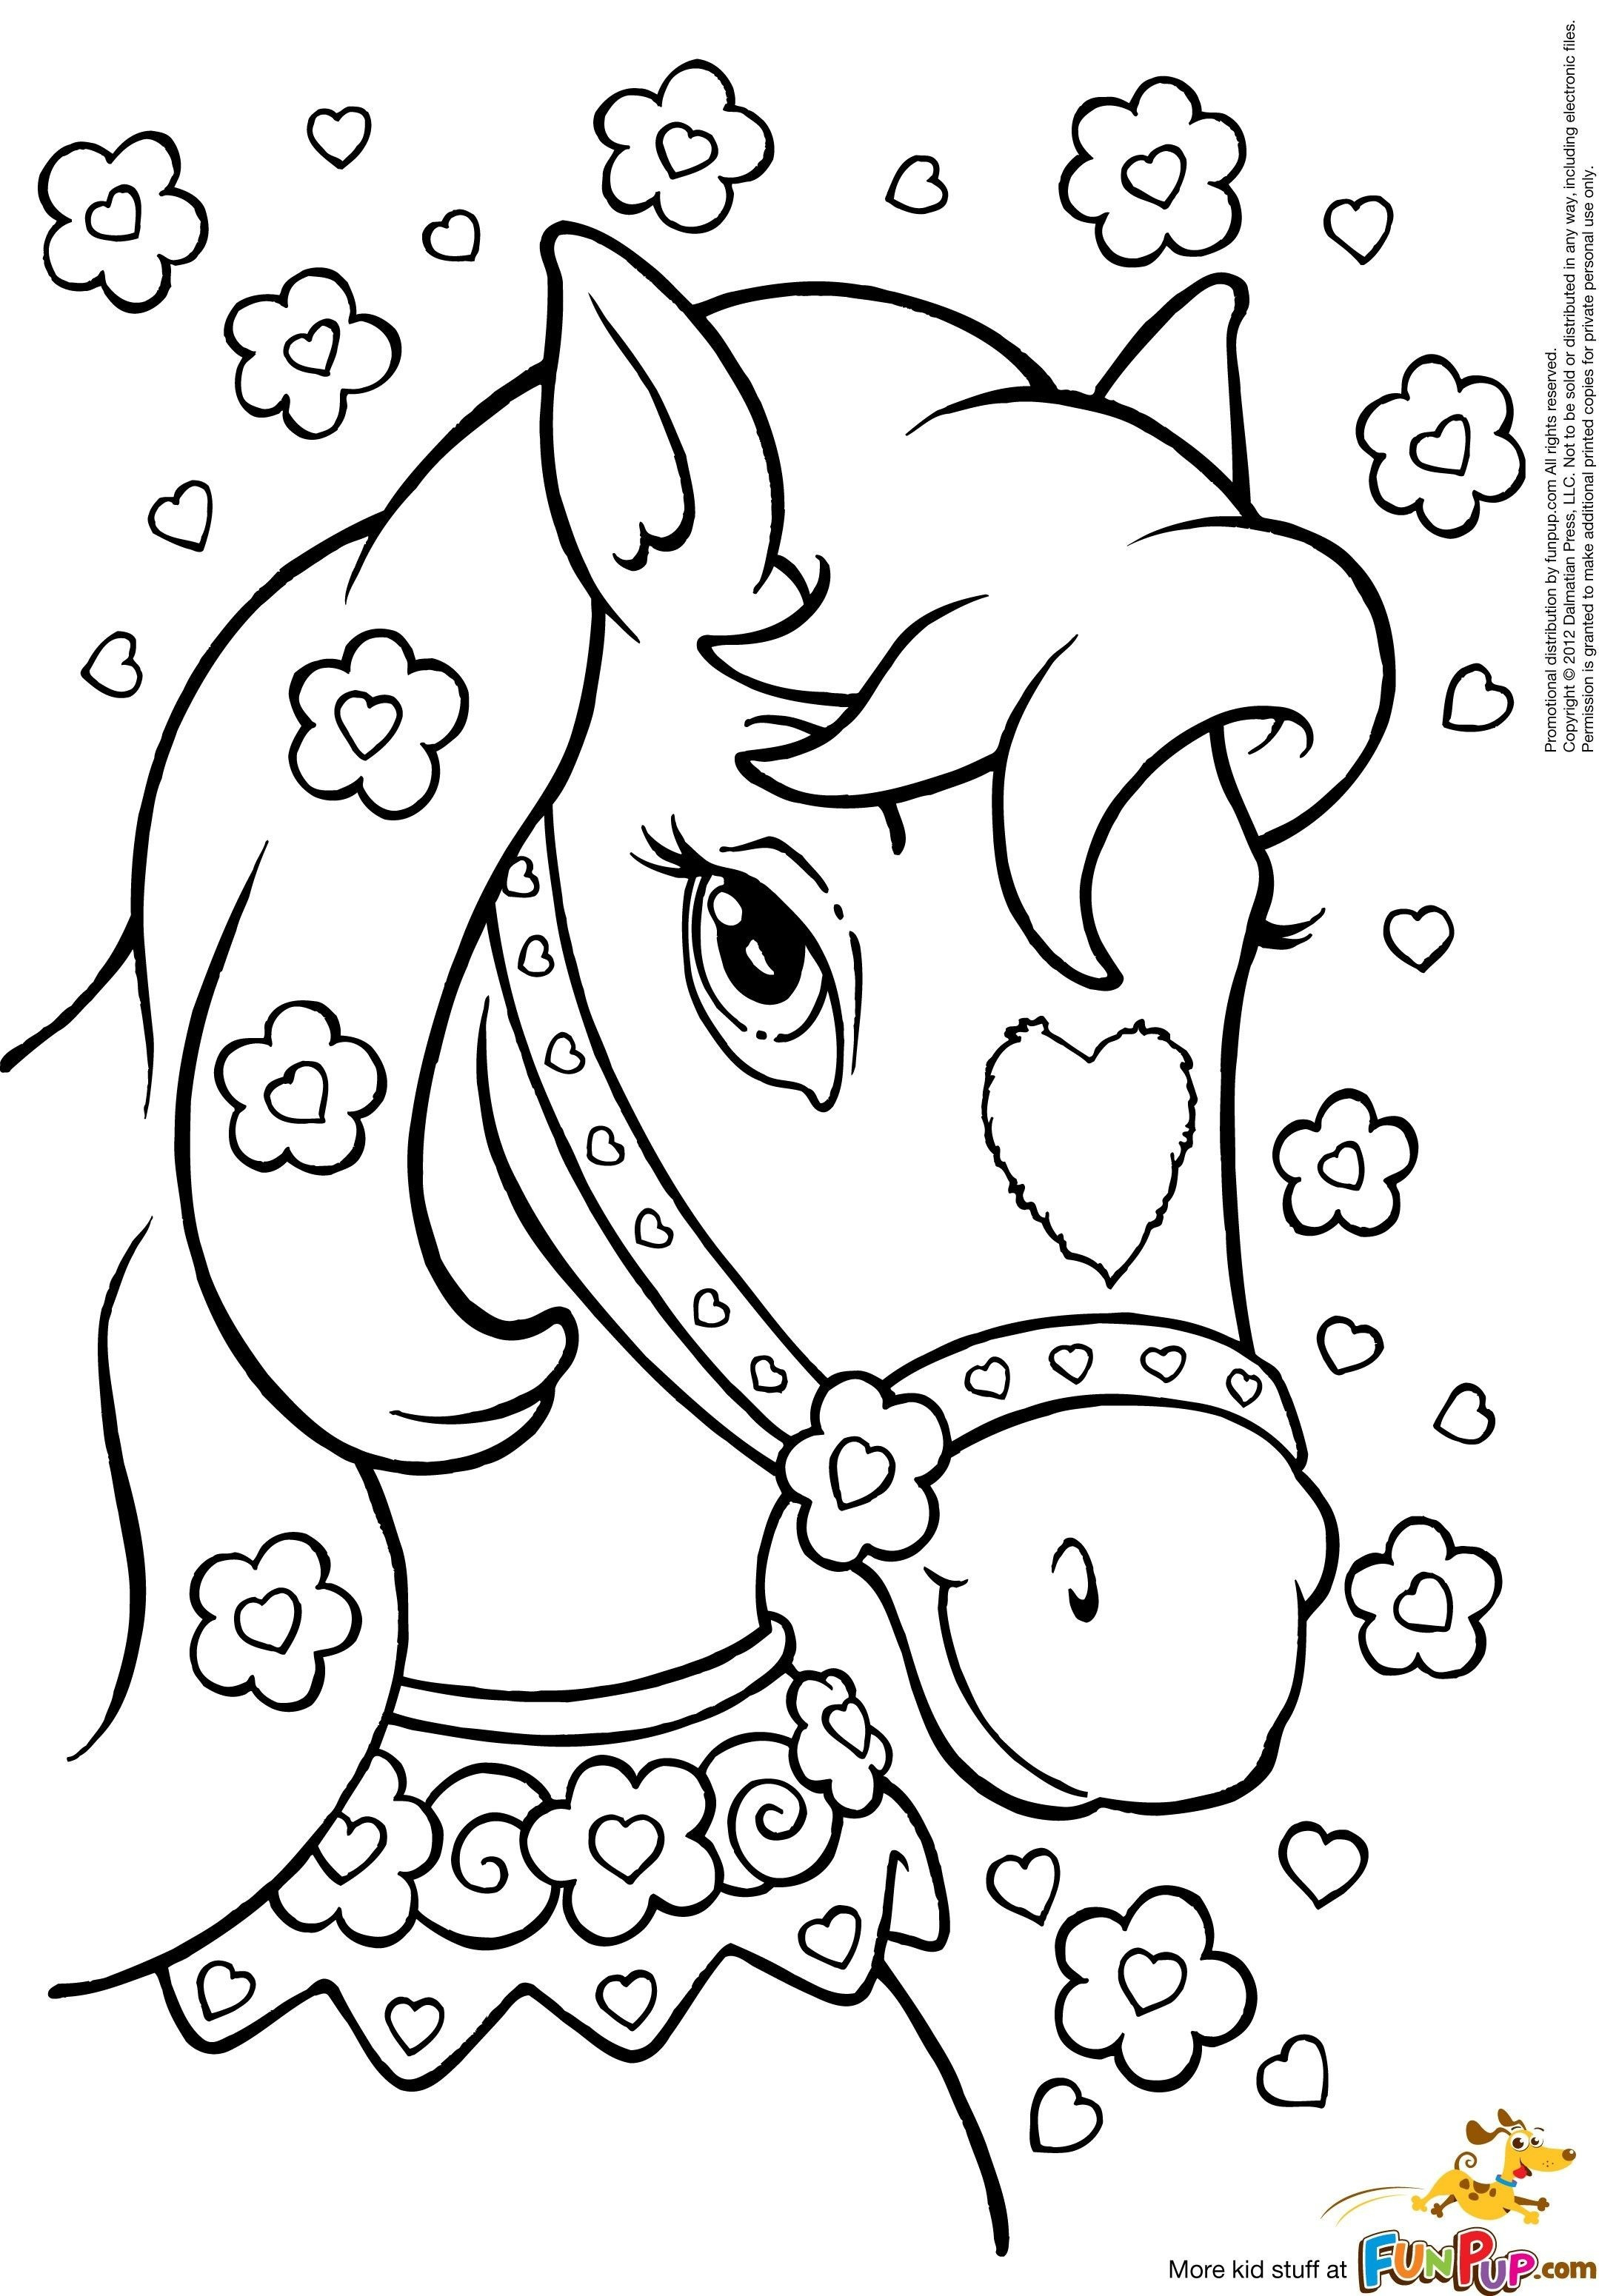 Coloring Pages Horses 24 Coloring Pages Of Horses Collection Coloring Sheets